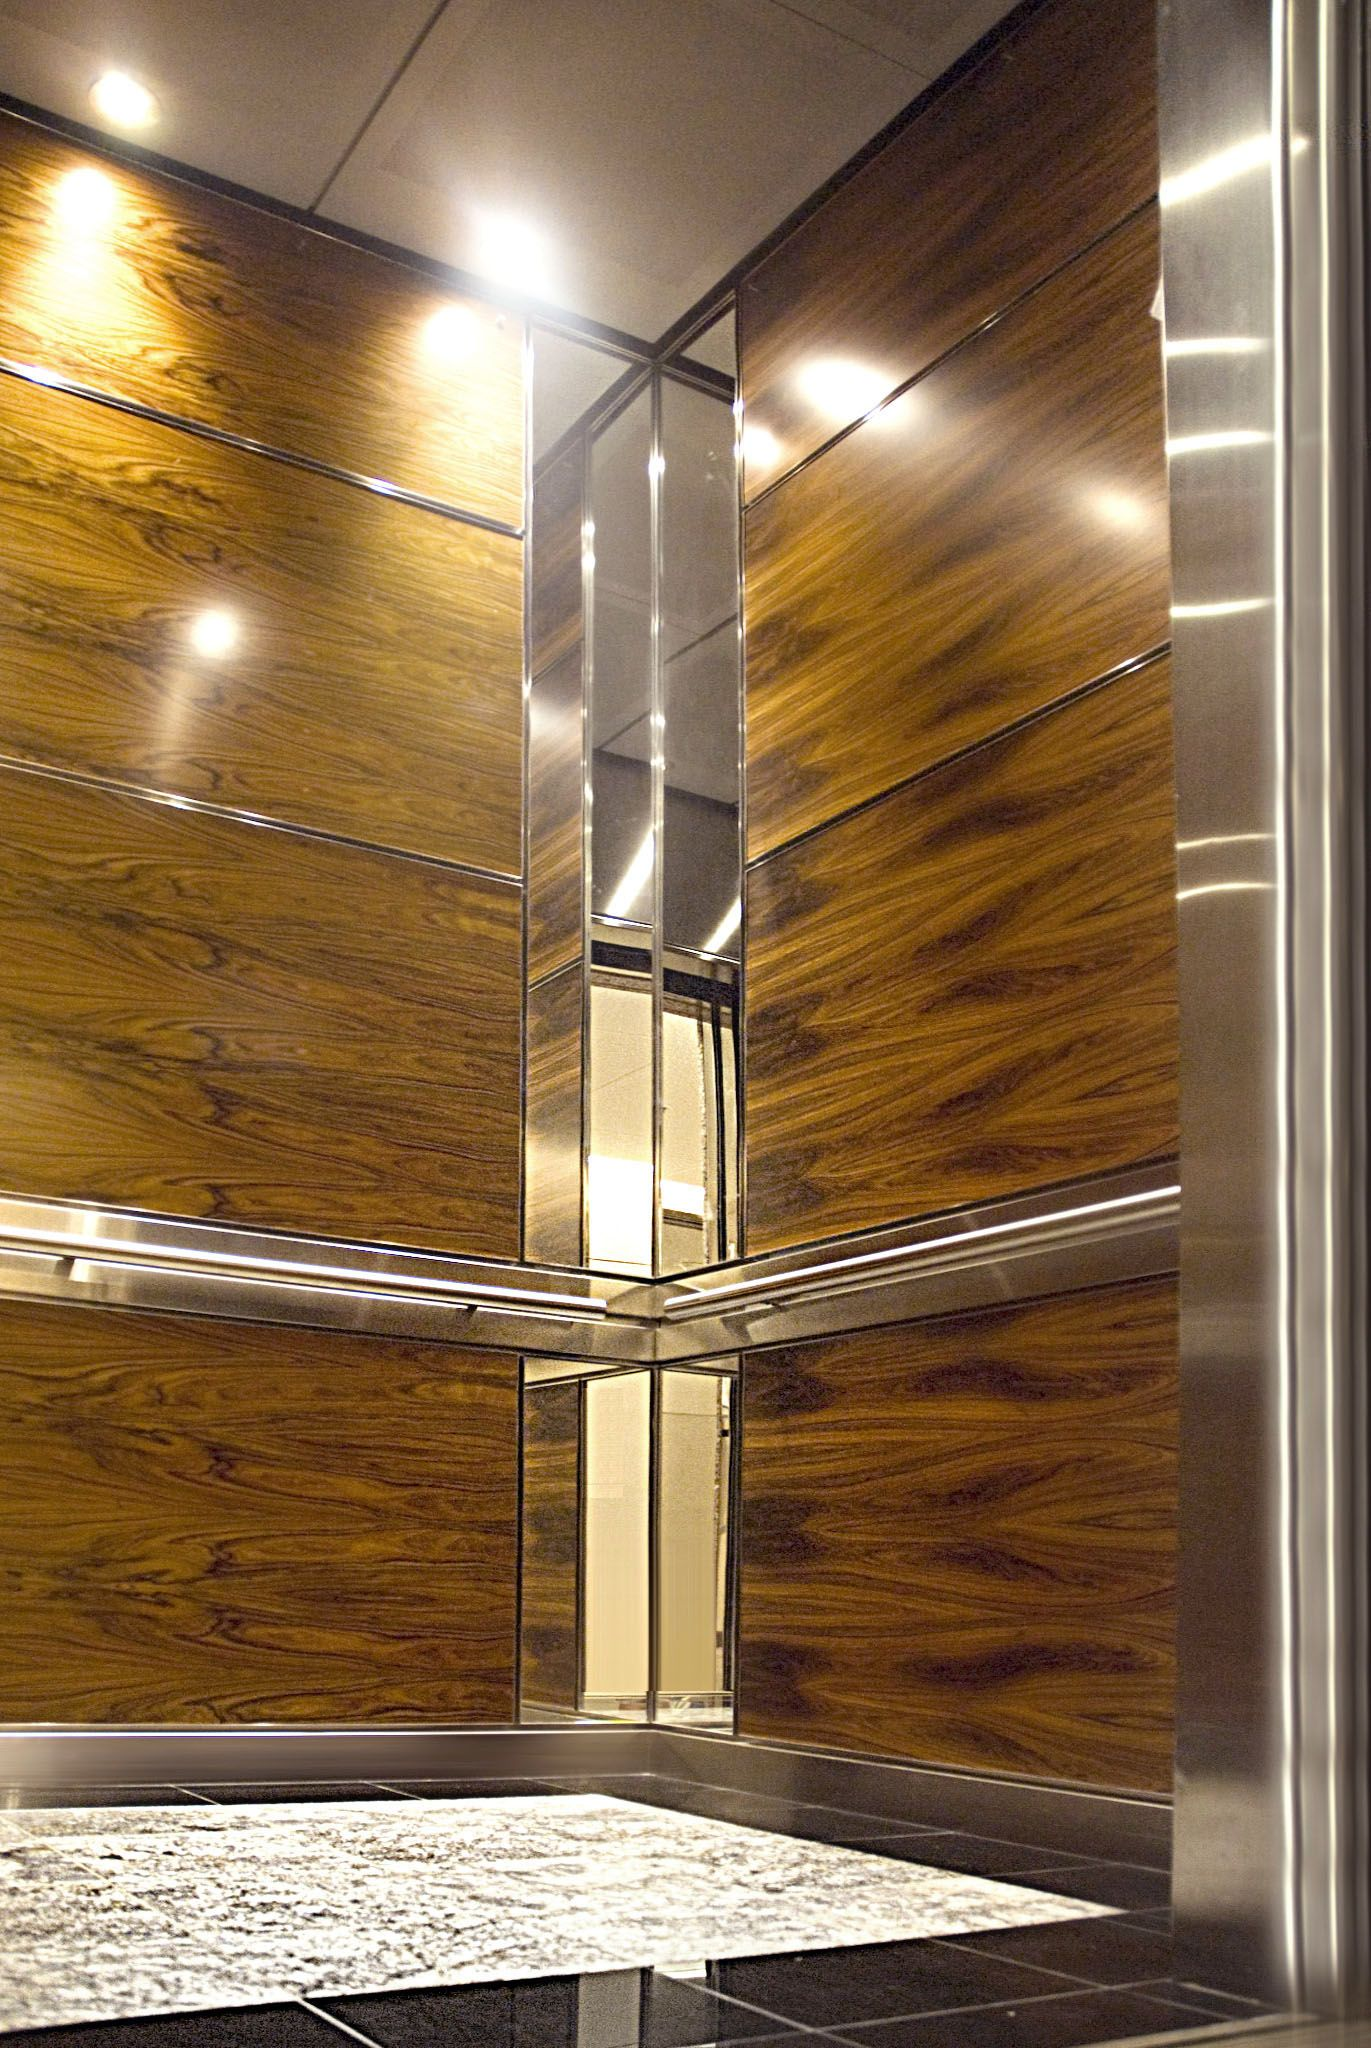 This Elevator Interior Utilized Both Durable And Natural